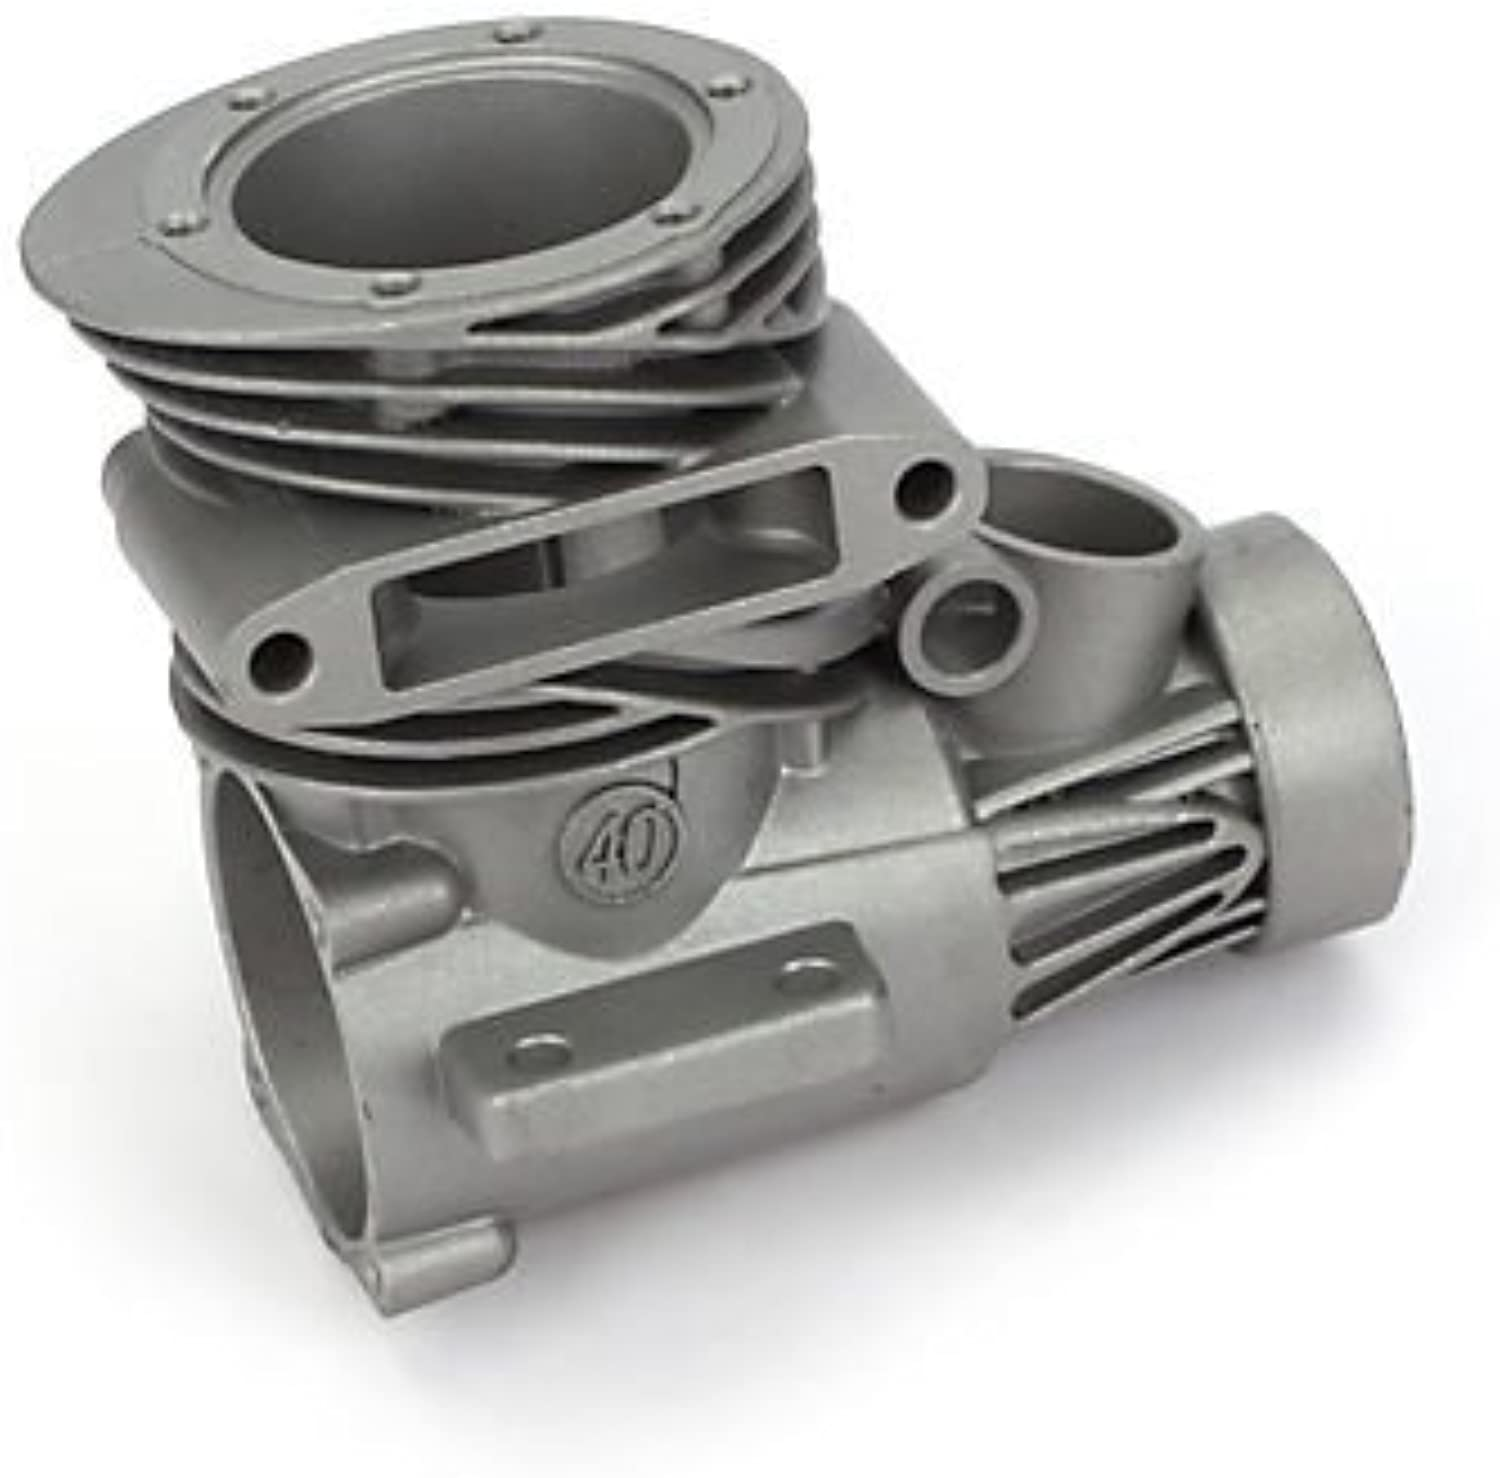 Crankcase 40NX by Evolution Engines